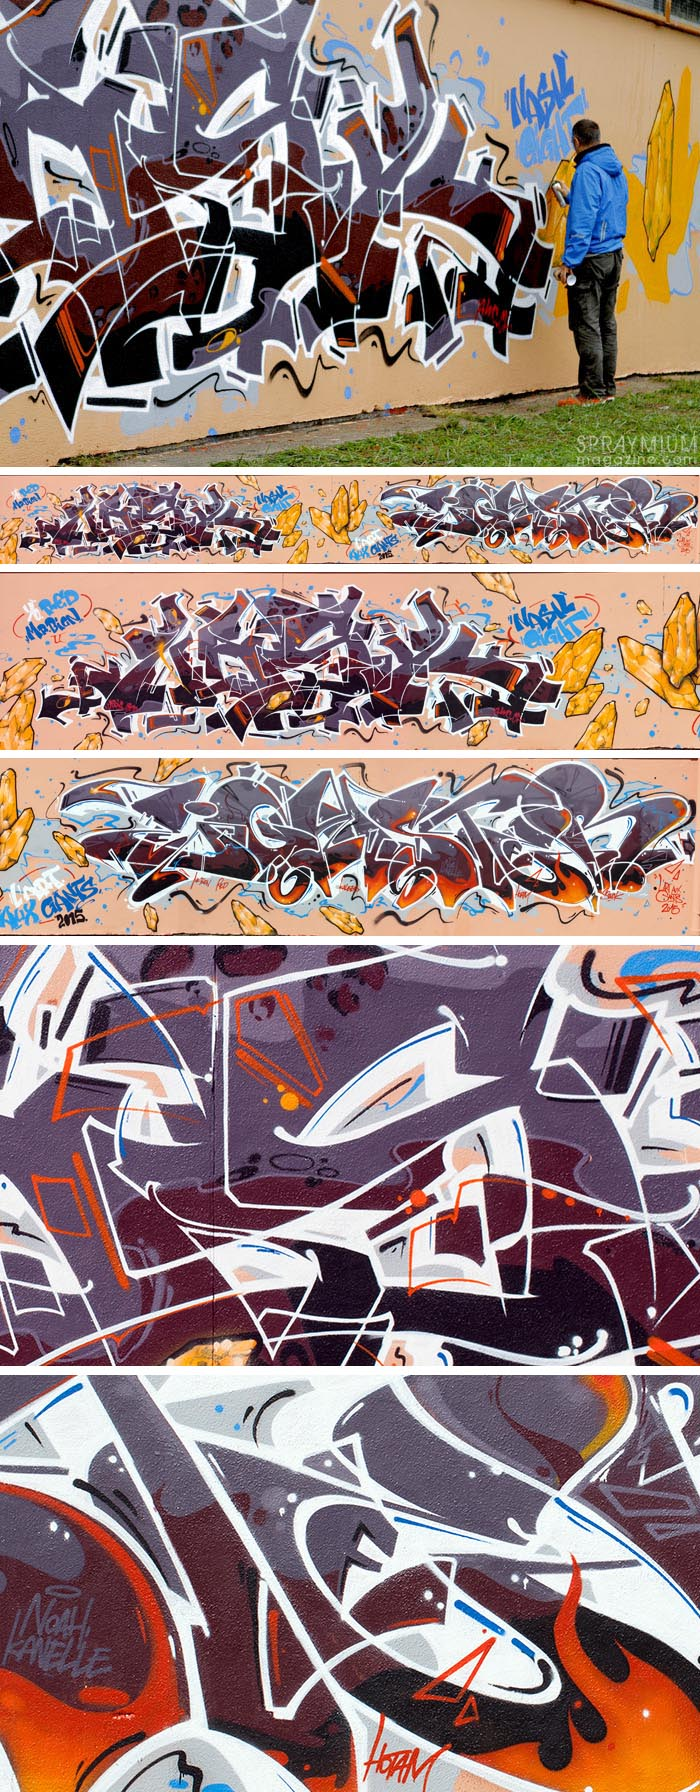 artauxgants spraymium festival graffiti writing art11 spraycanart nask eightster